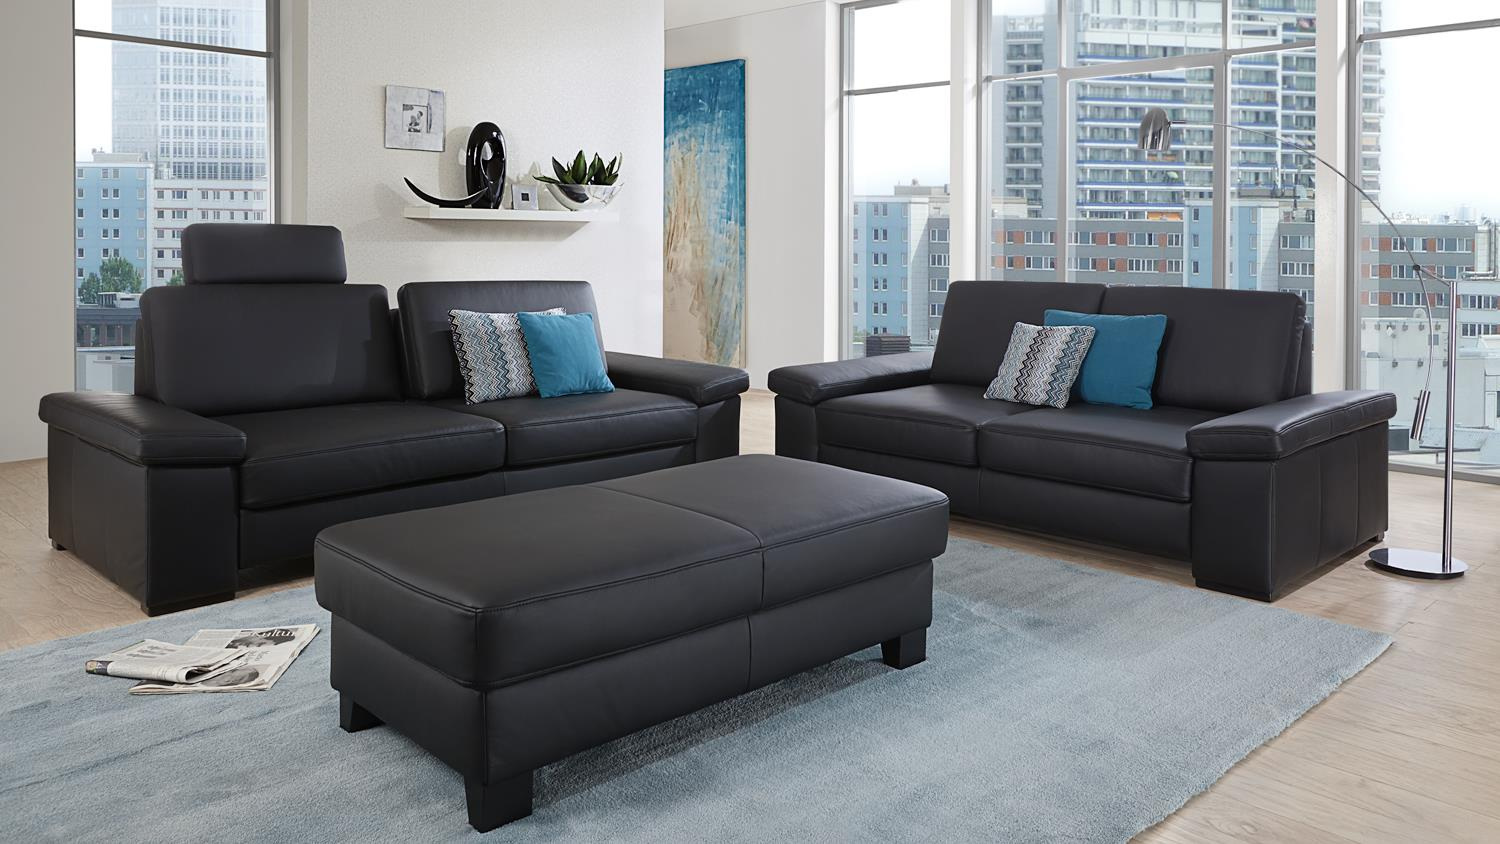 sofa puzzle 2 sitzer in echtleder schwarz mit federkern. Black Bedroom Furniture Sets. Home Design Ideas